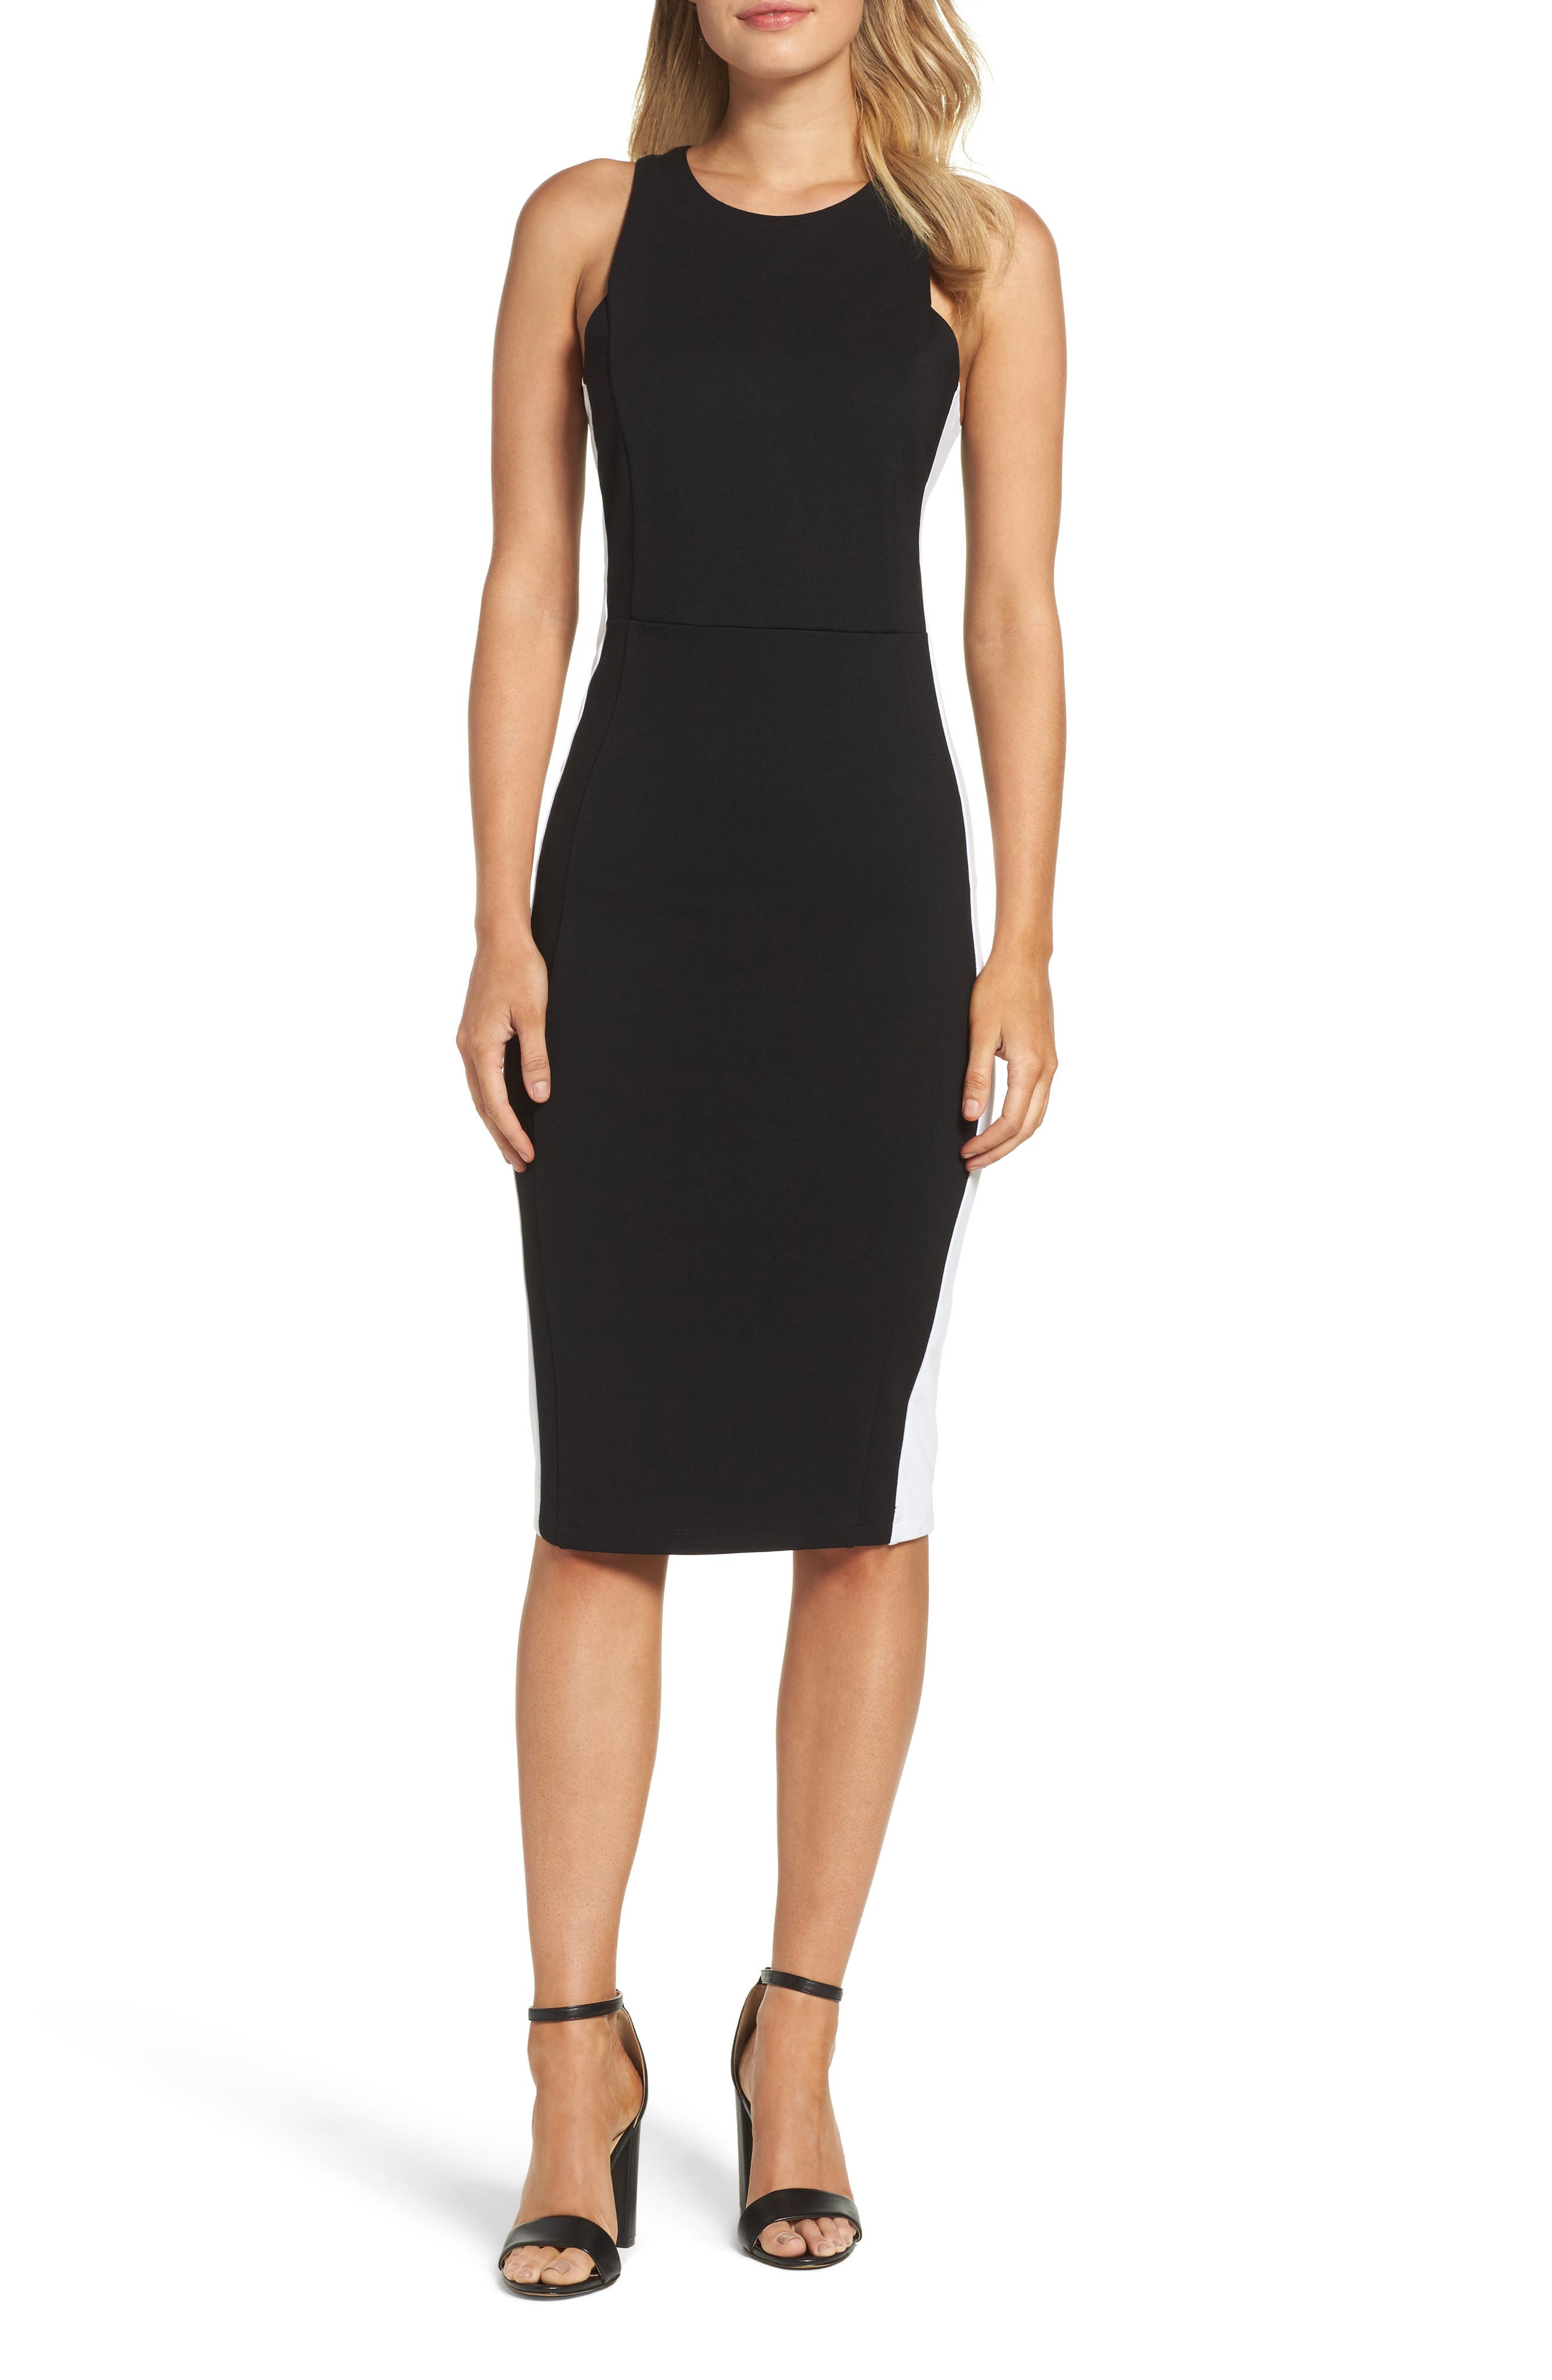 Alternate Image 1 Selected - Felicity & Coco Orlanda Ponte Knit Sheath Dress (Nordstrom Exclusive)